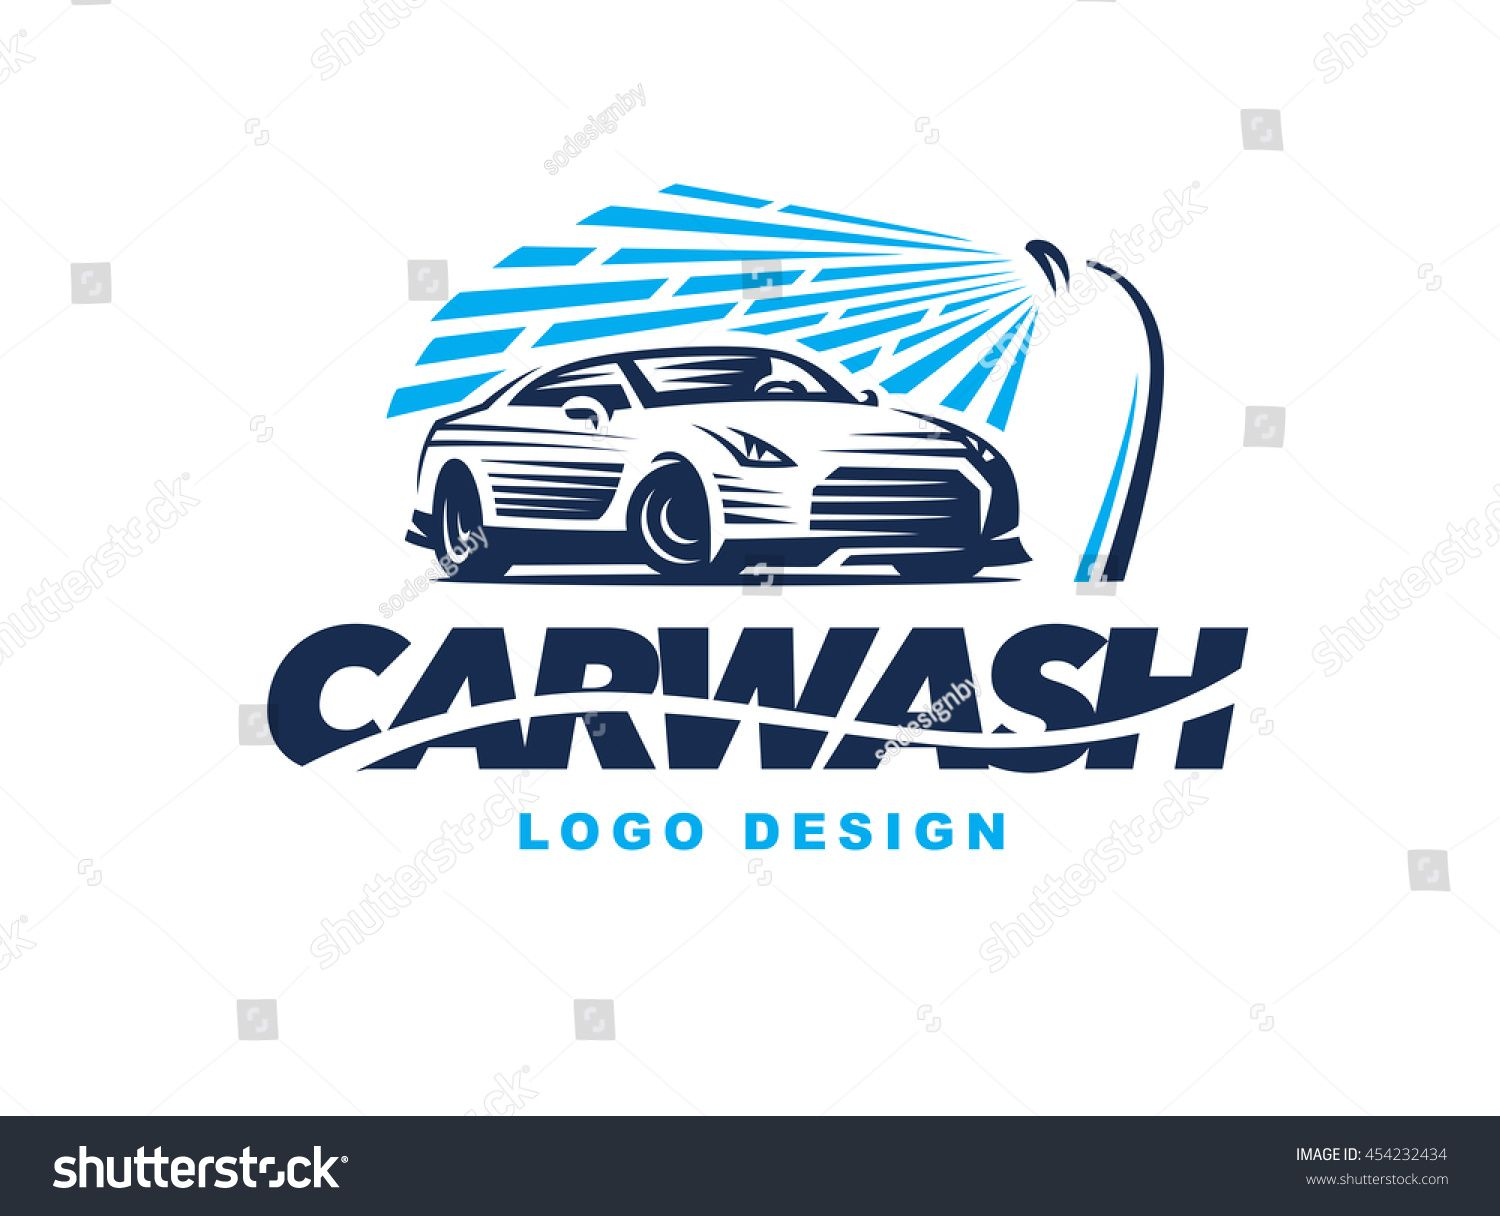 Logo car wash on light background. Car logo design, Wash